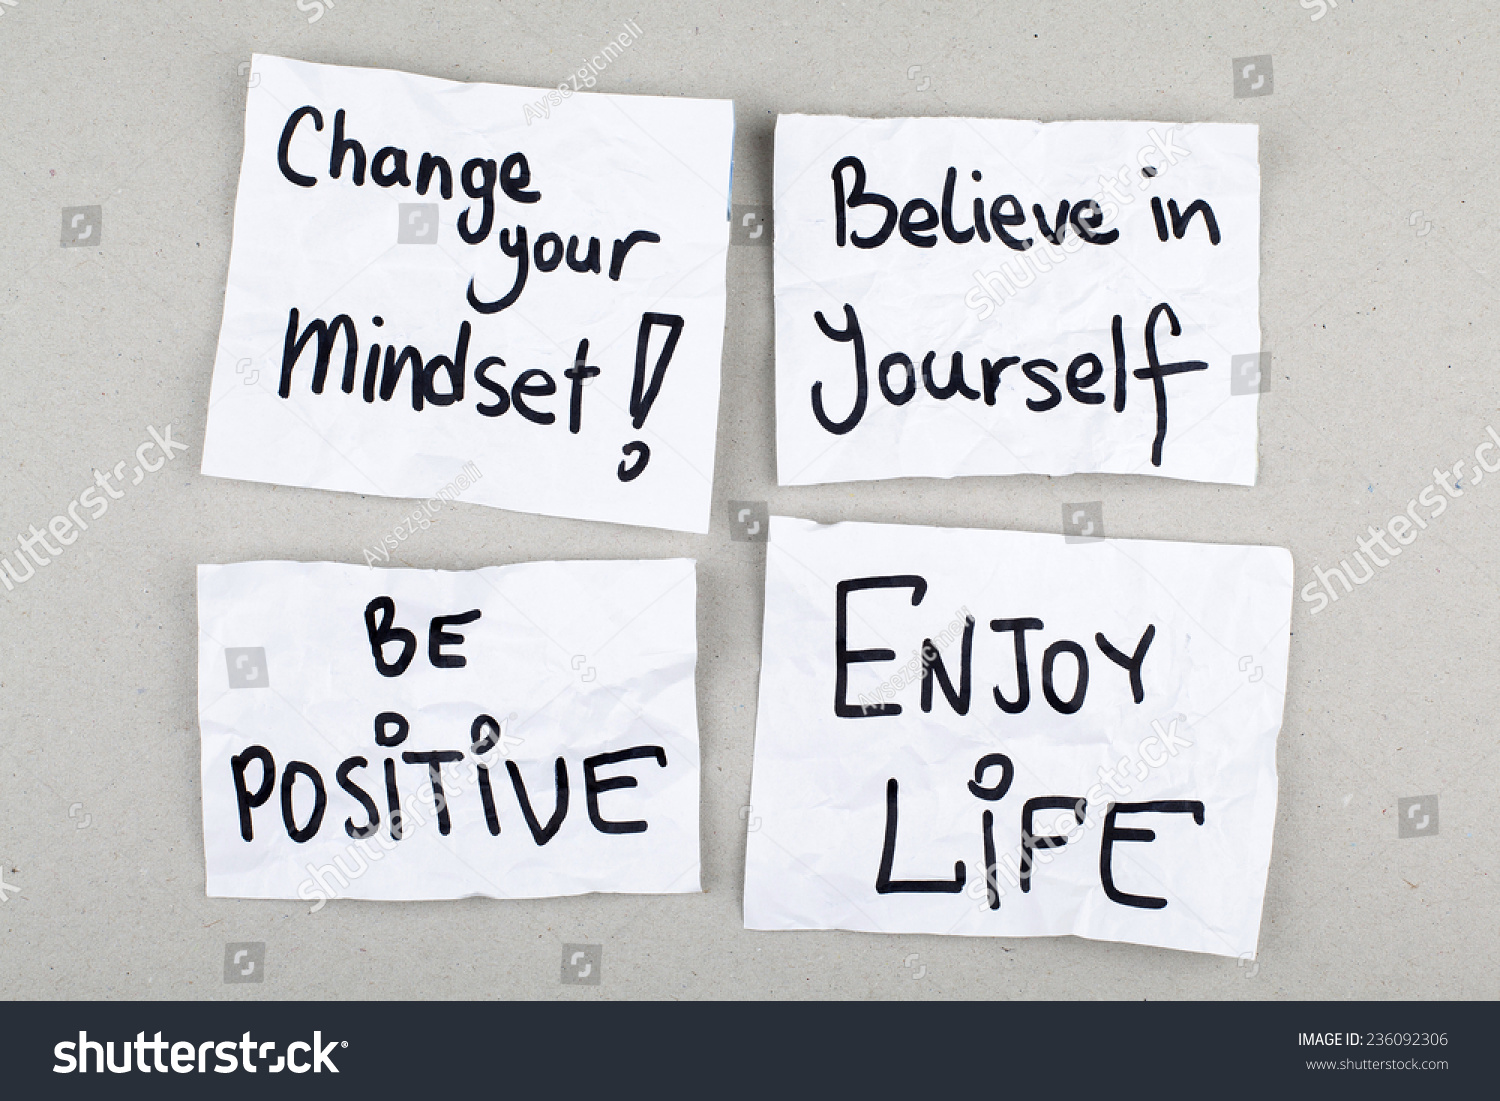 Positive Quotes About Change Captivating Motivational Inspirational Positive Quotes Phrases Change Stock